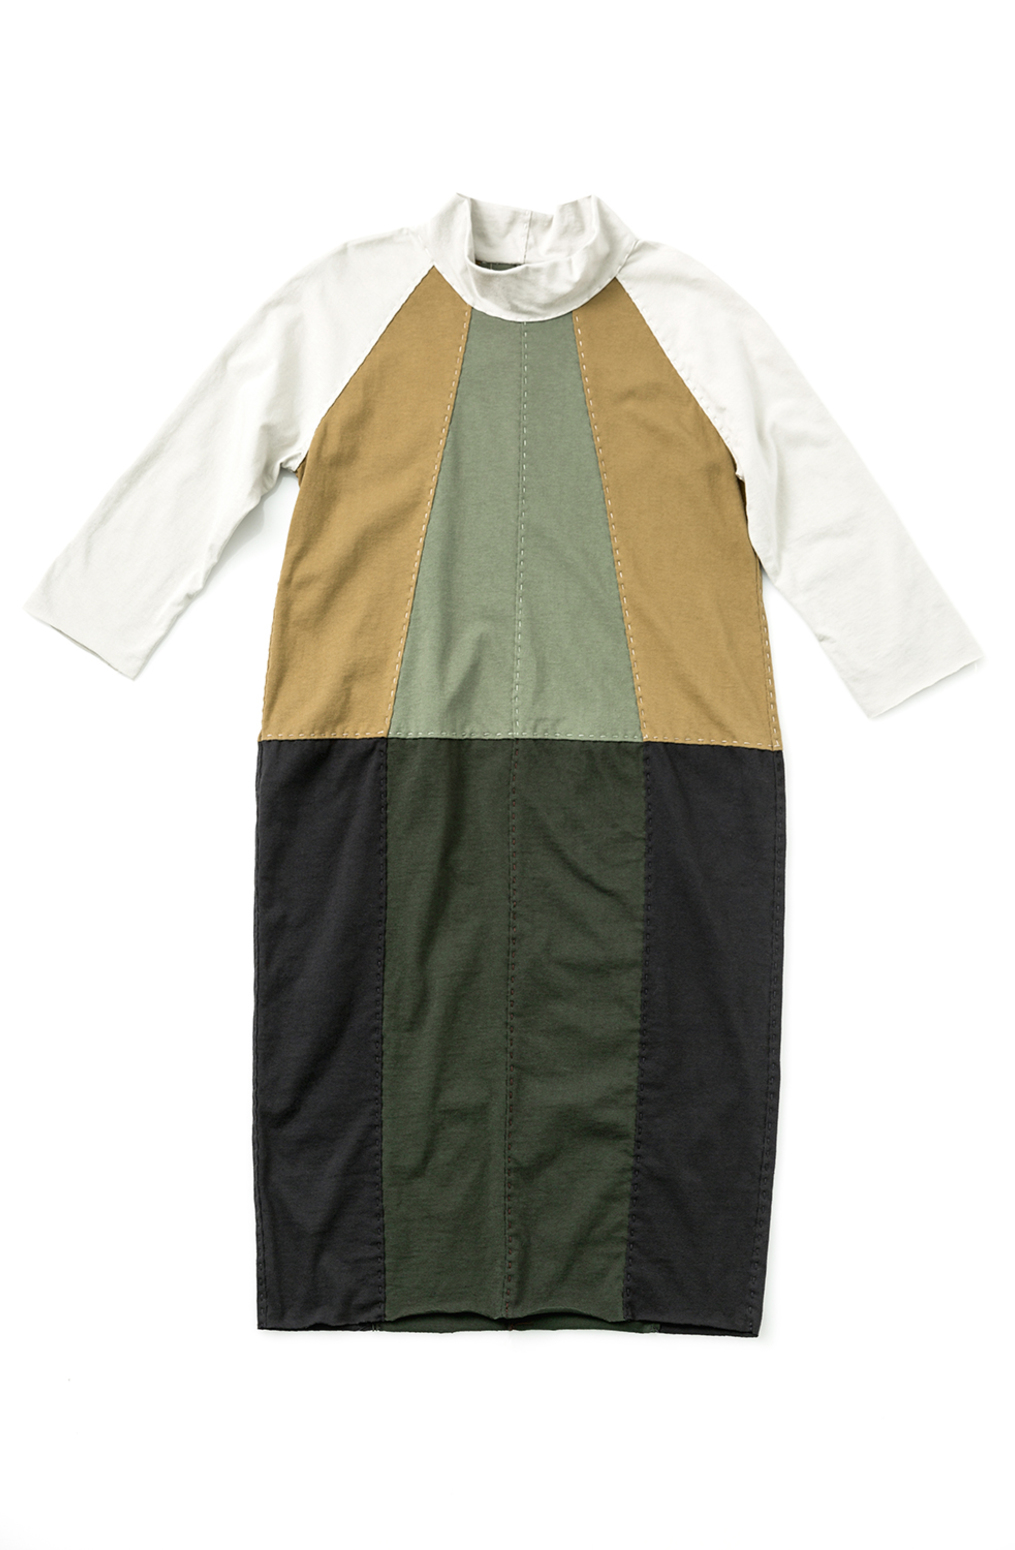 Fractal dress   colorblock   parchment ochre verdant forest black   28496   build a wardrobe 2019   abraham rowe 2